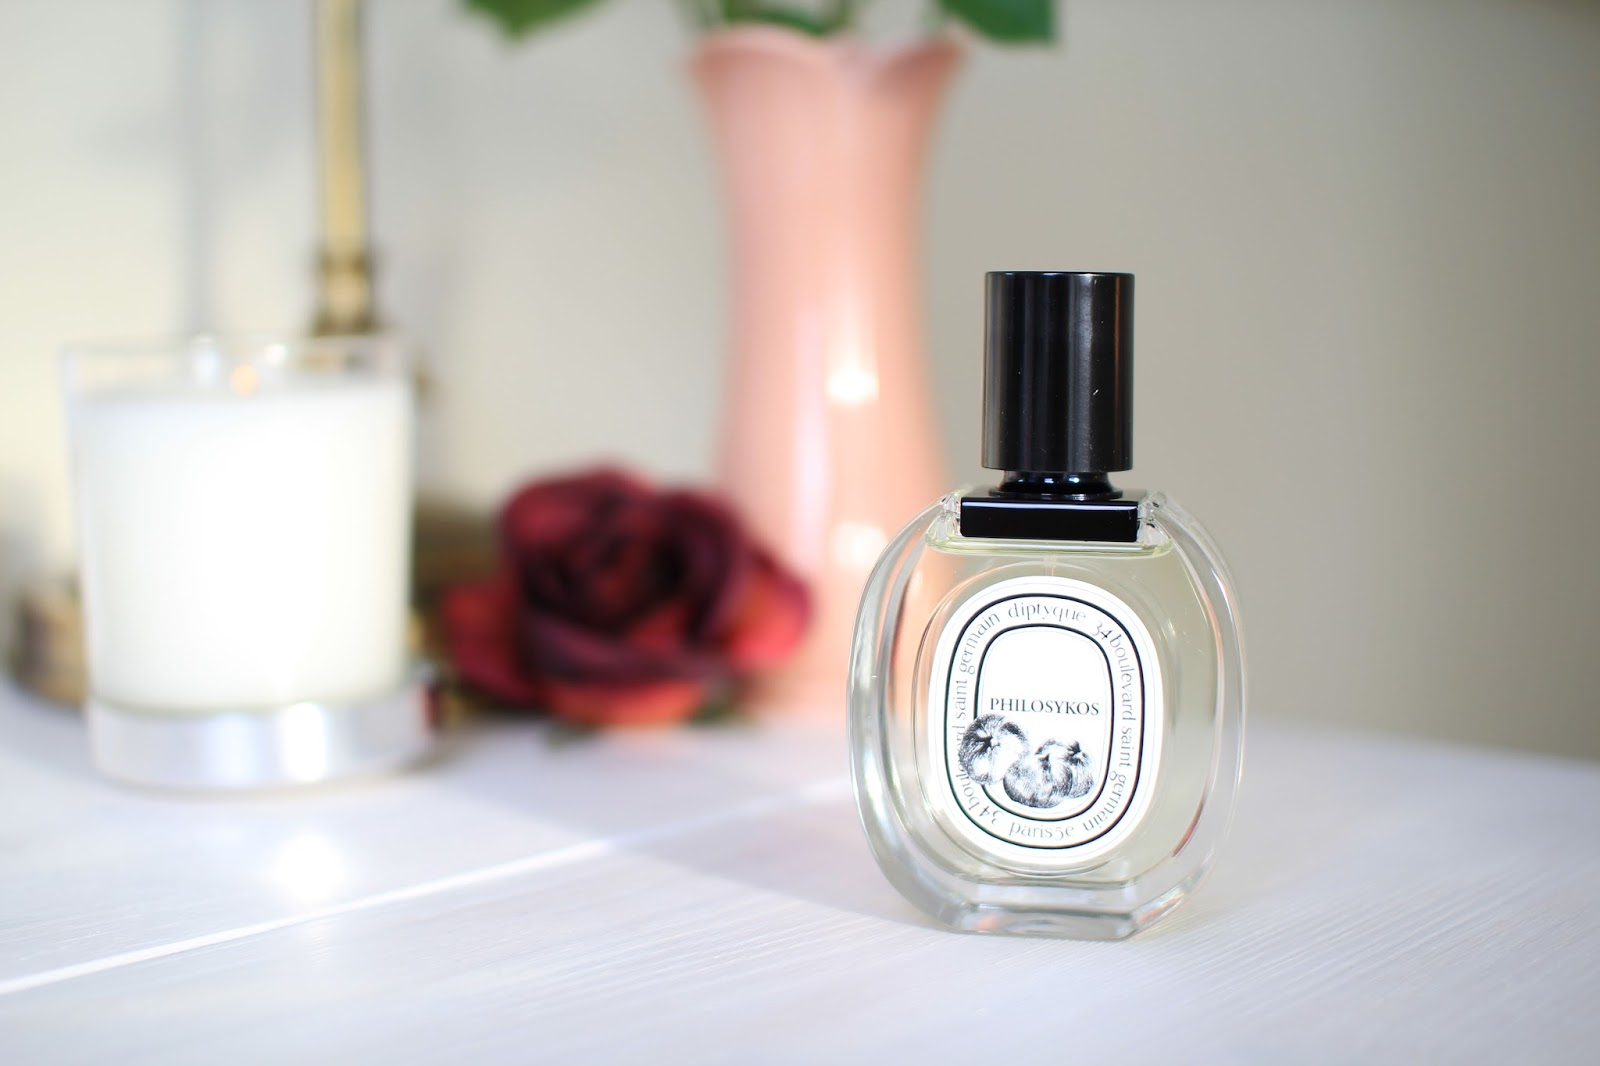 Diptyque Philosykos Fragrance